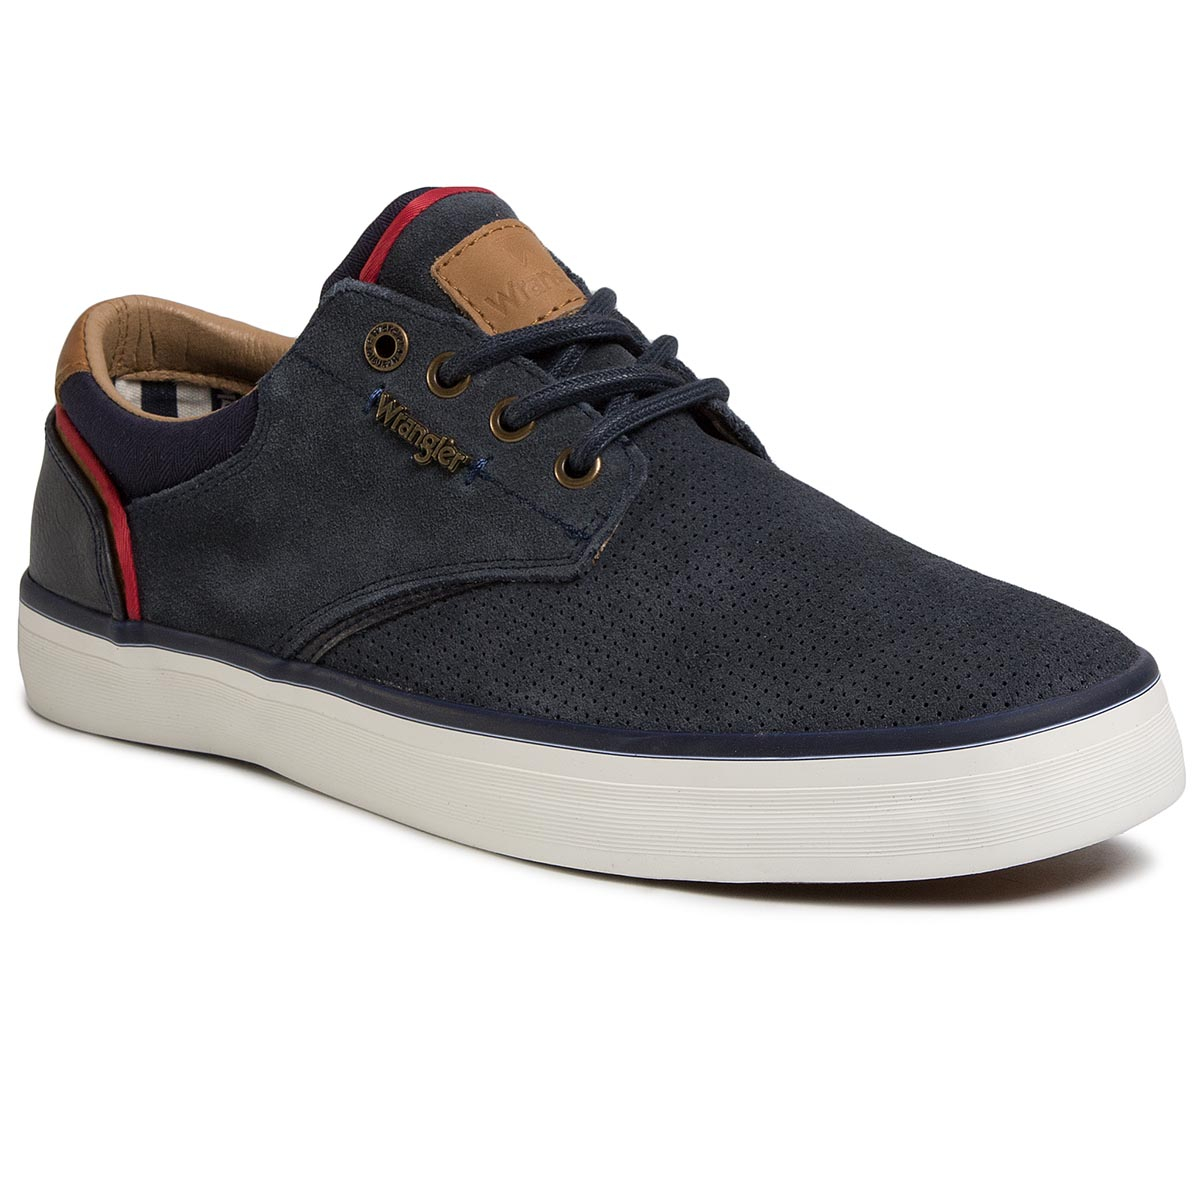 Teniși Wrangler - Monument Suede Wm01003a Navy 016 imagine epantofi.ro 2021